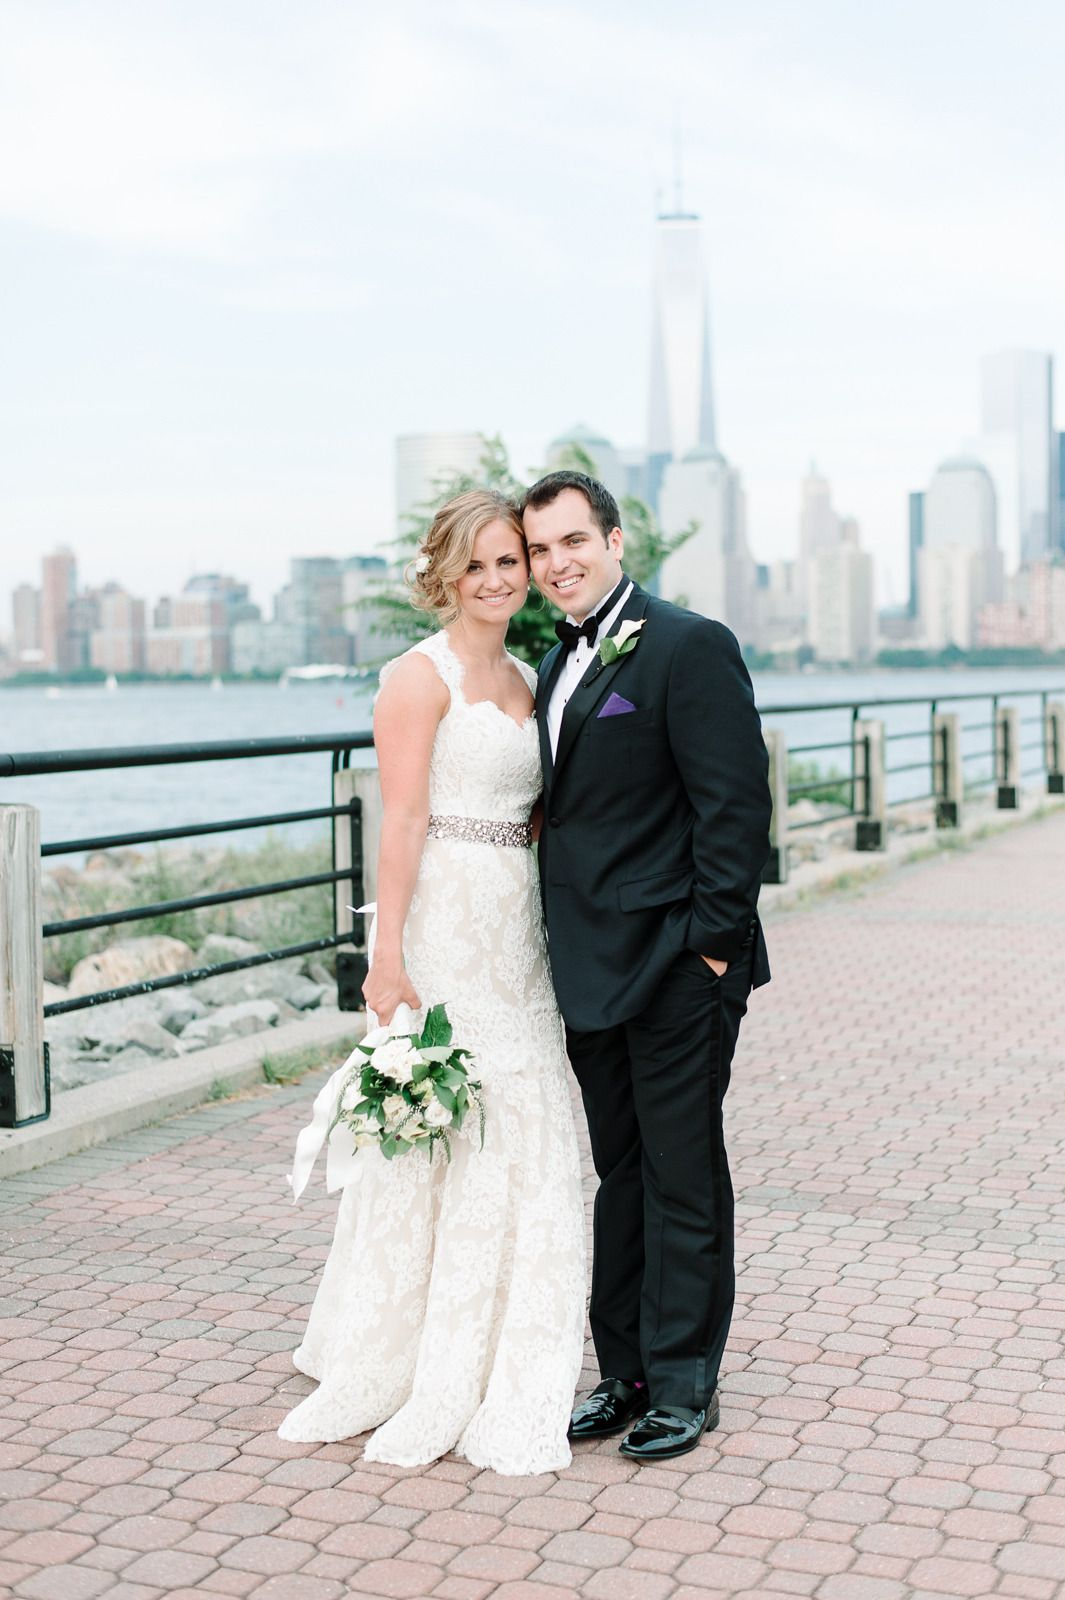 One of a kind wedding dresses  Liberty House Wedding Featuring a OneOfAKind Gown